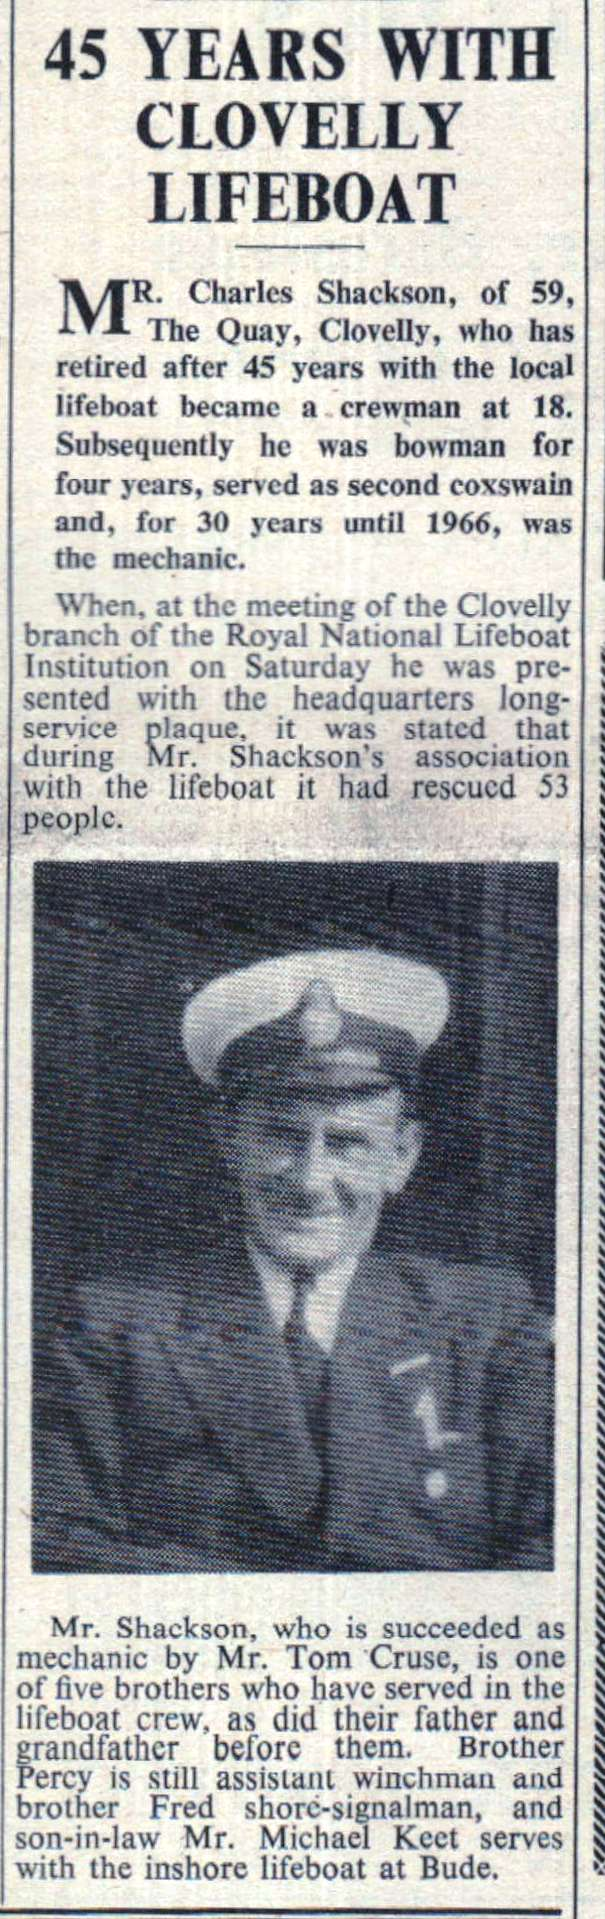 1967 Mr Charles Shackson retires from Clovelly Lifeboat